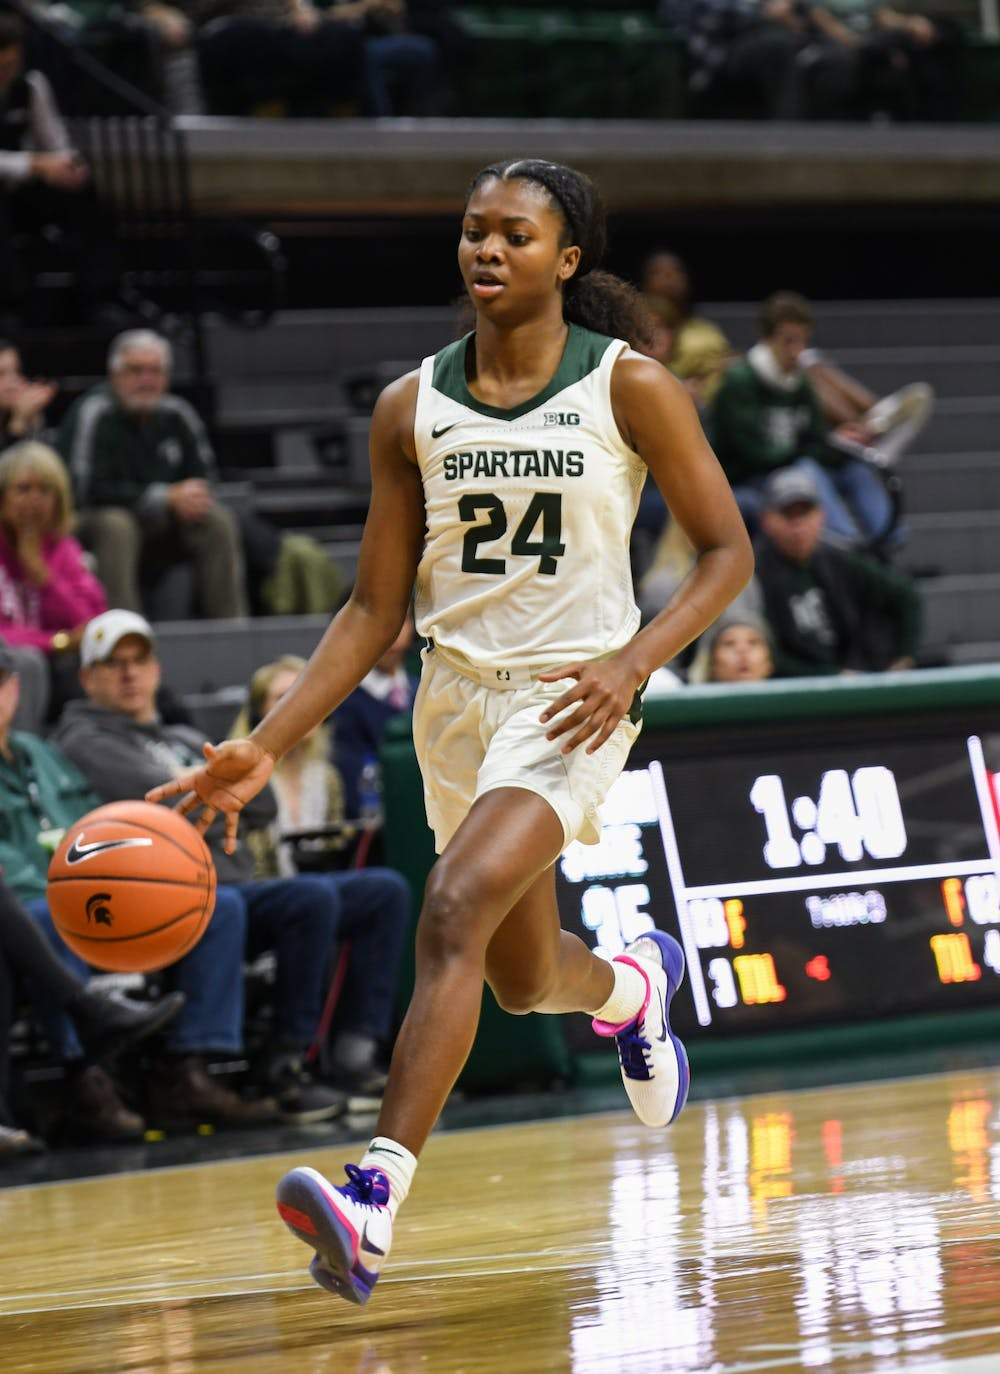 <p>Sophomore guard Nia Clouden (24) during the women&#x27;s basketball game against Rutgers at the Breslin Center on Feb. 13, 2020. The Spartans ended a five game losing streak and defeated the Scarlet Knights 57-53. </p>